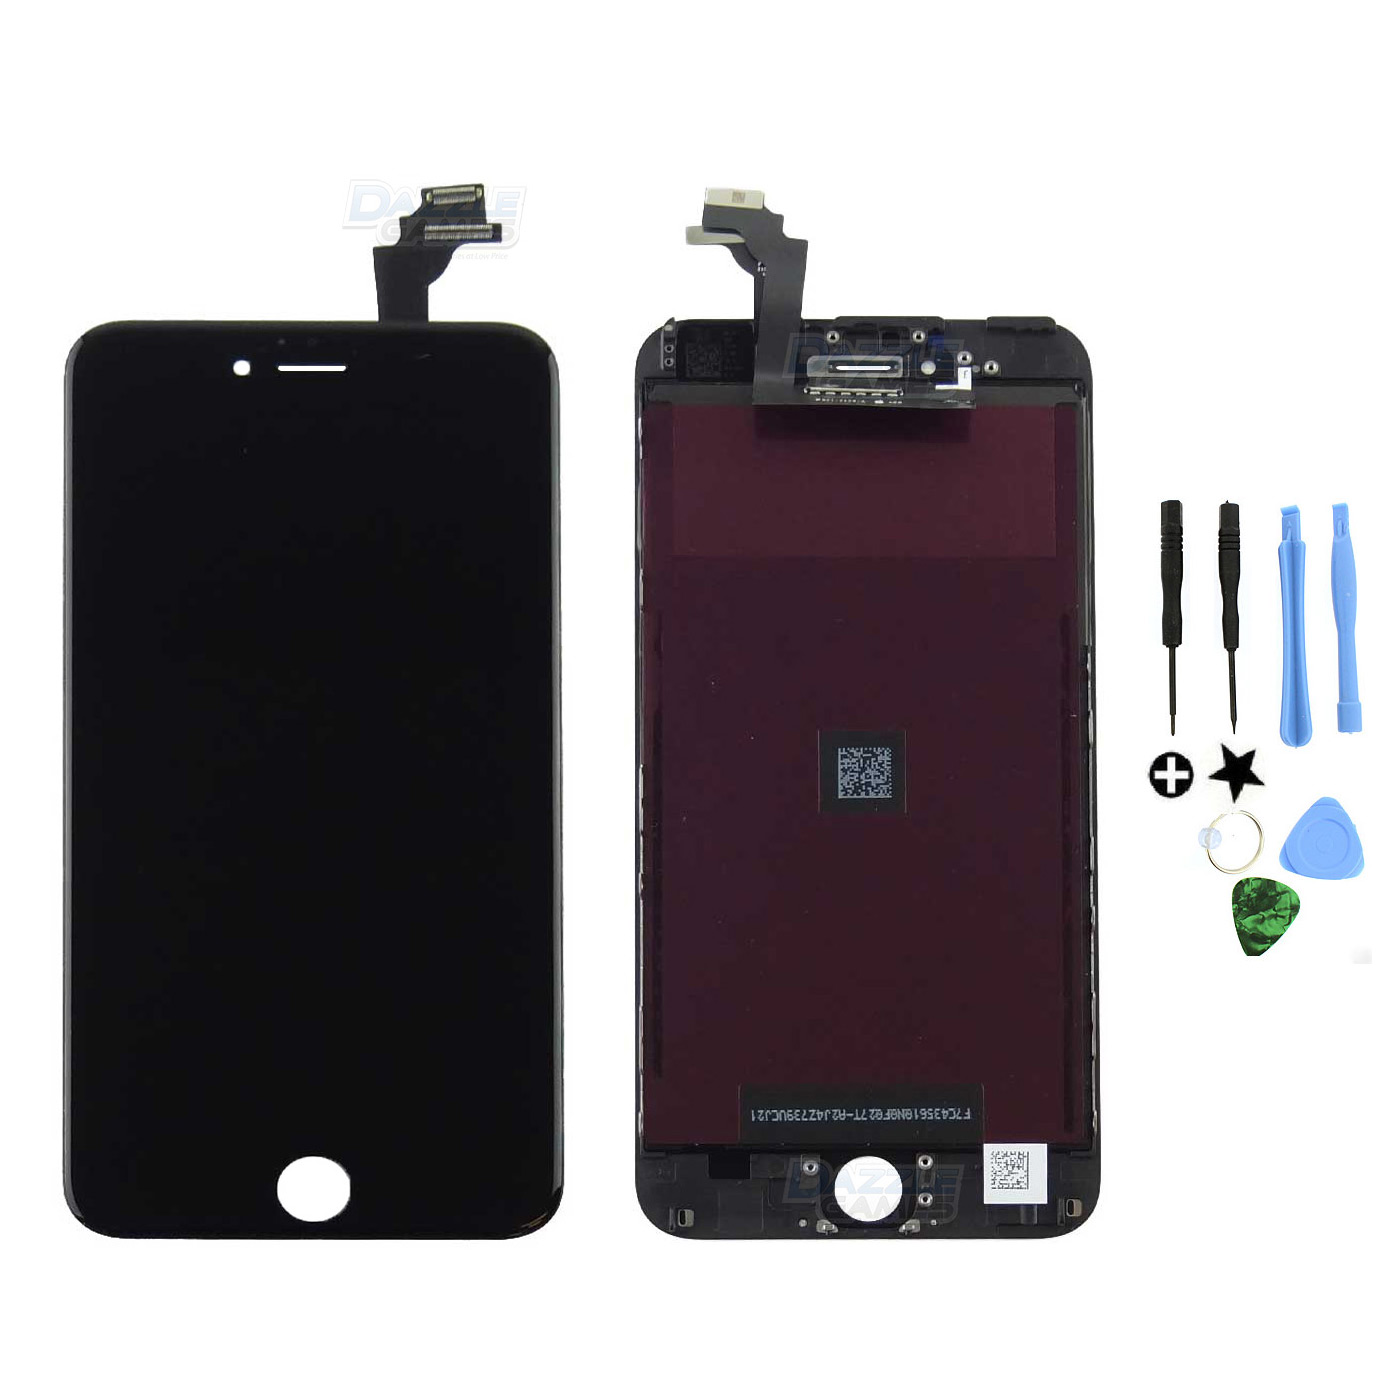 OEM Original Black Touch Digitizer LCD Screen Assembly For